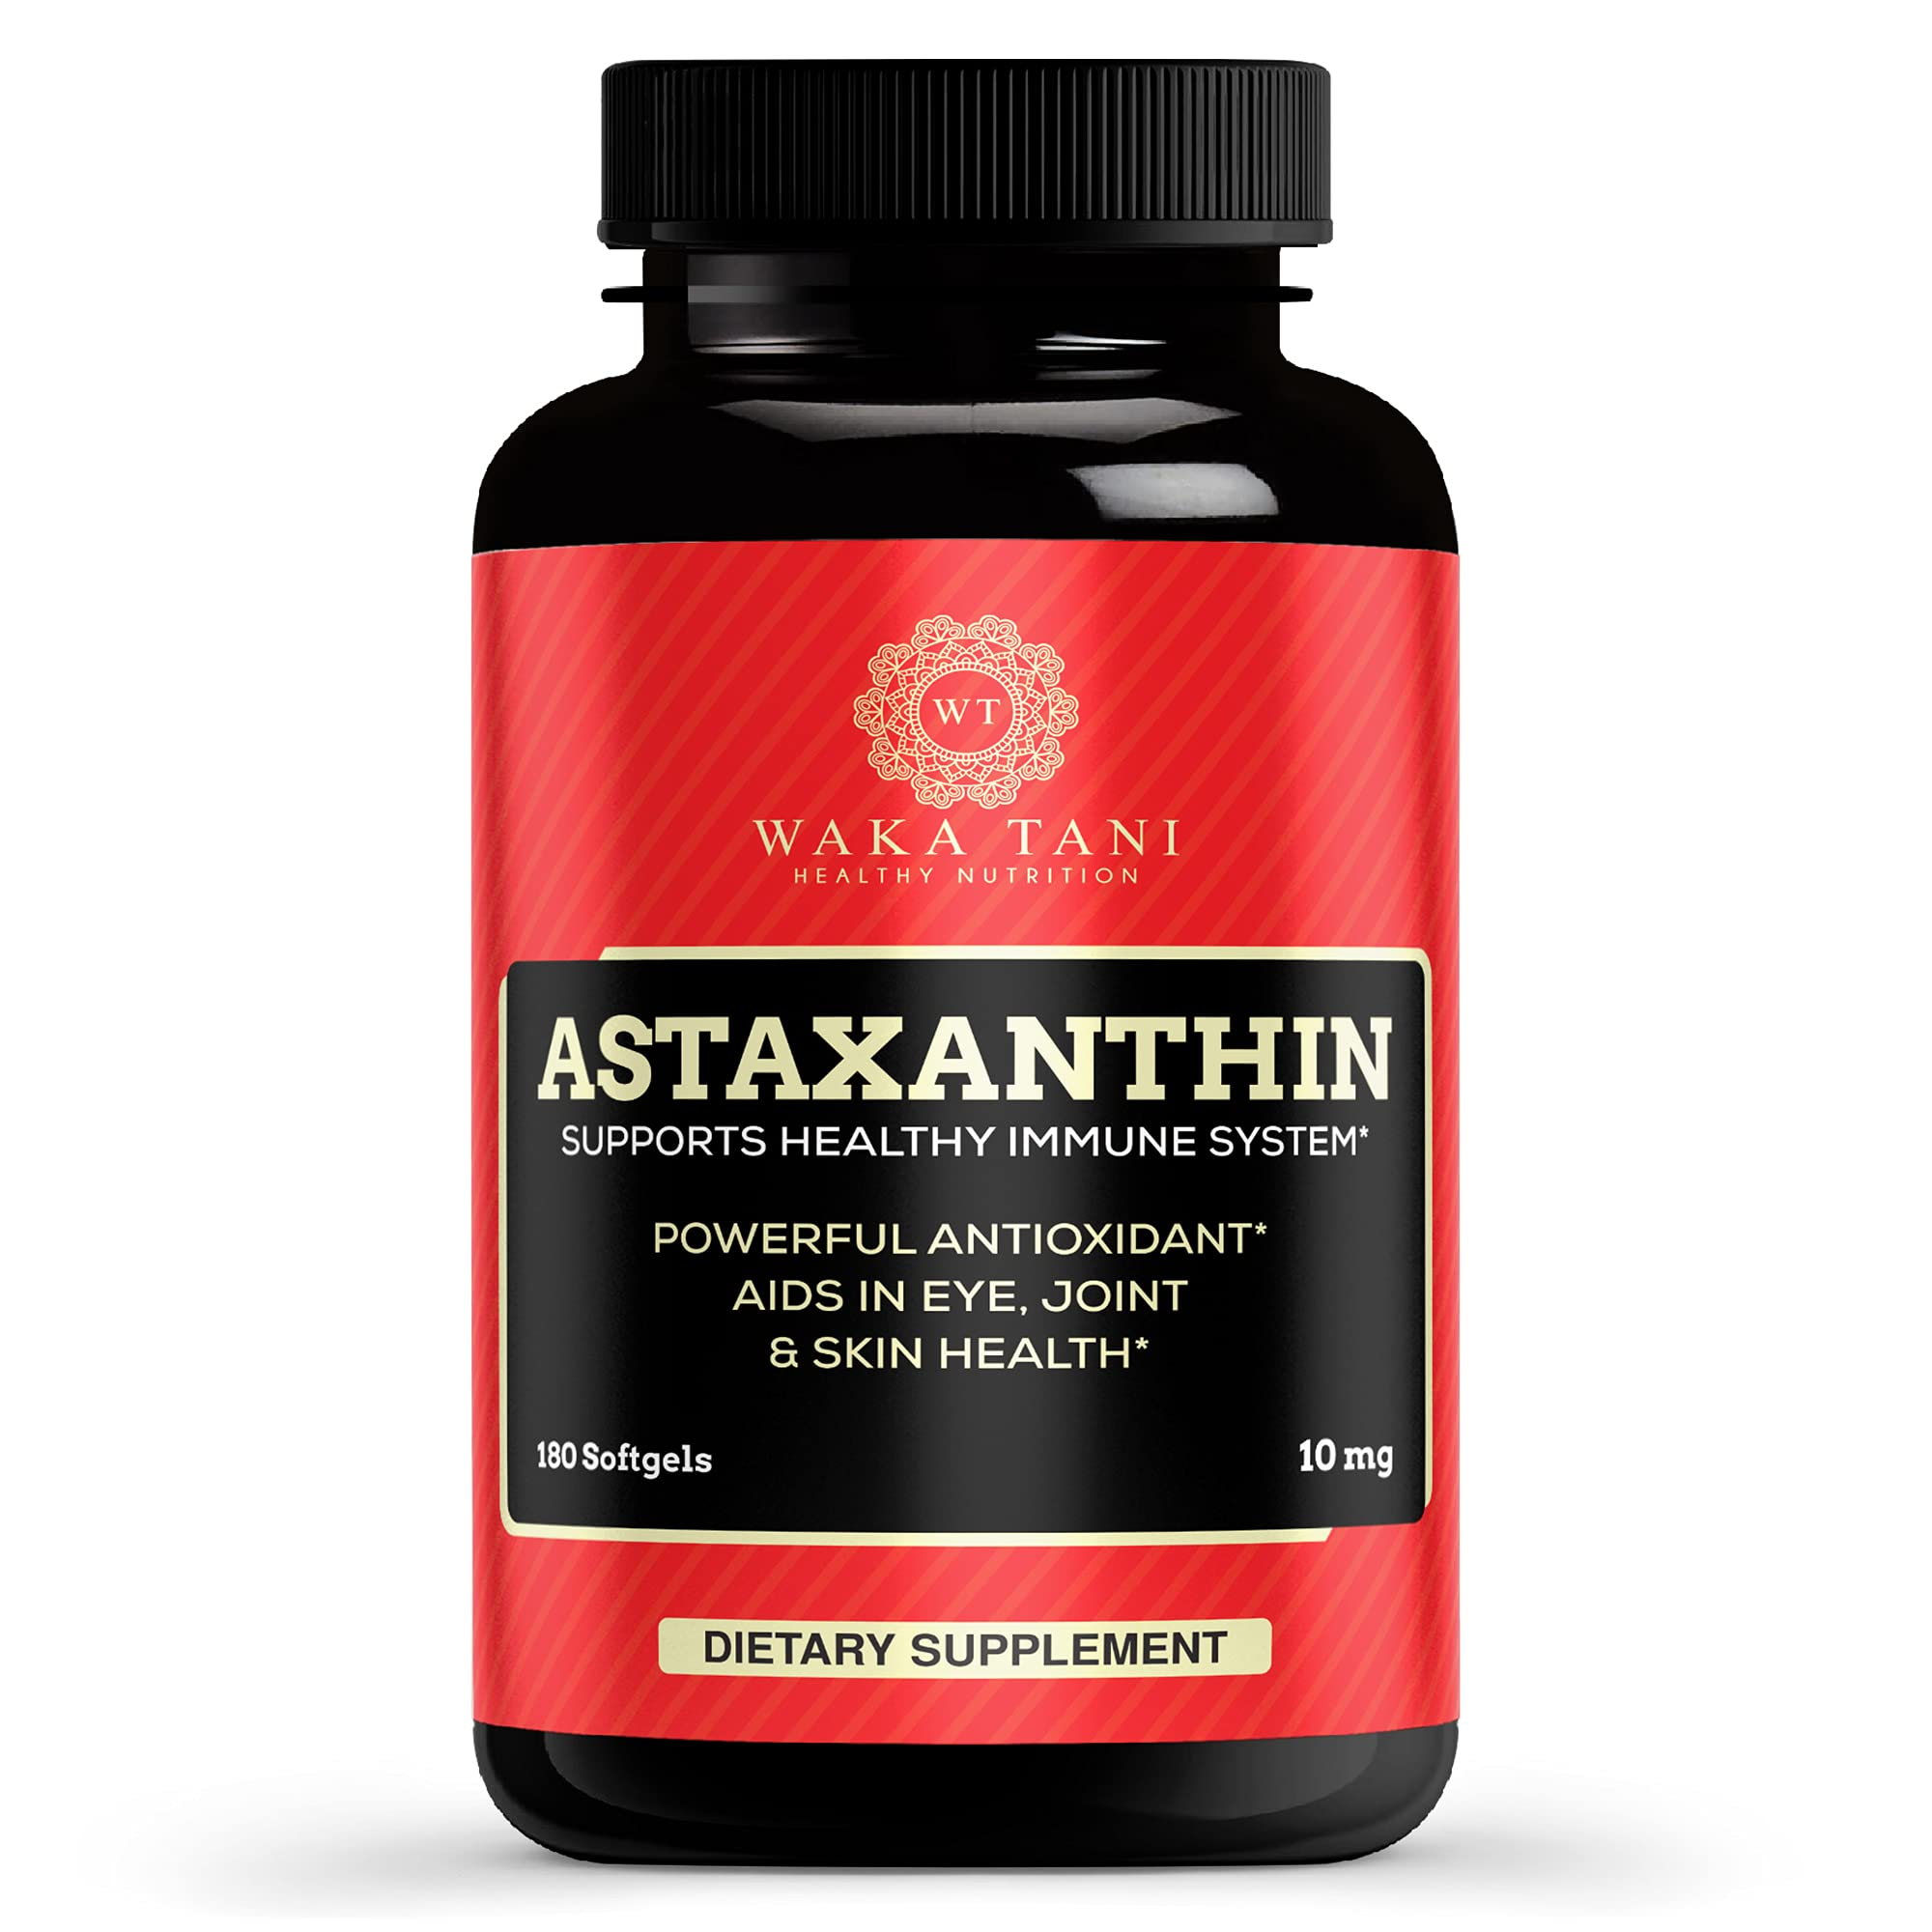 Astaxanthin 10mg 180 Softgels. Powerful Antioxidant & Anti-inflammatory Keto Carotenoid. Natural Algae Supplement. Recommended for: Joint, Brain, Eye, Cardiovascular & Immune System.